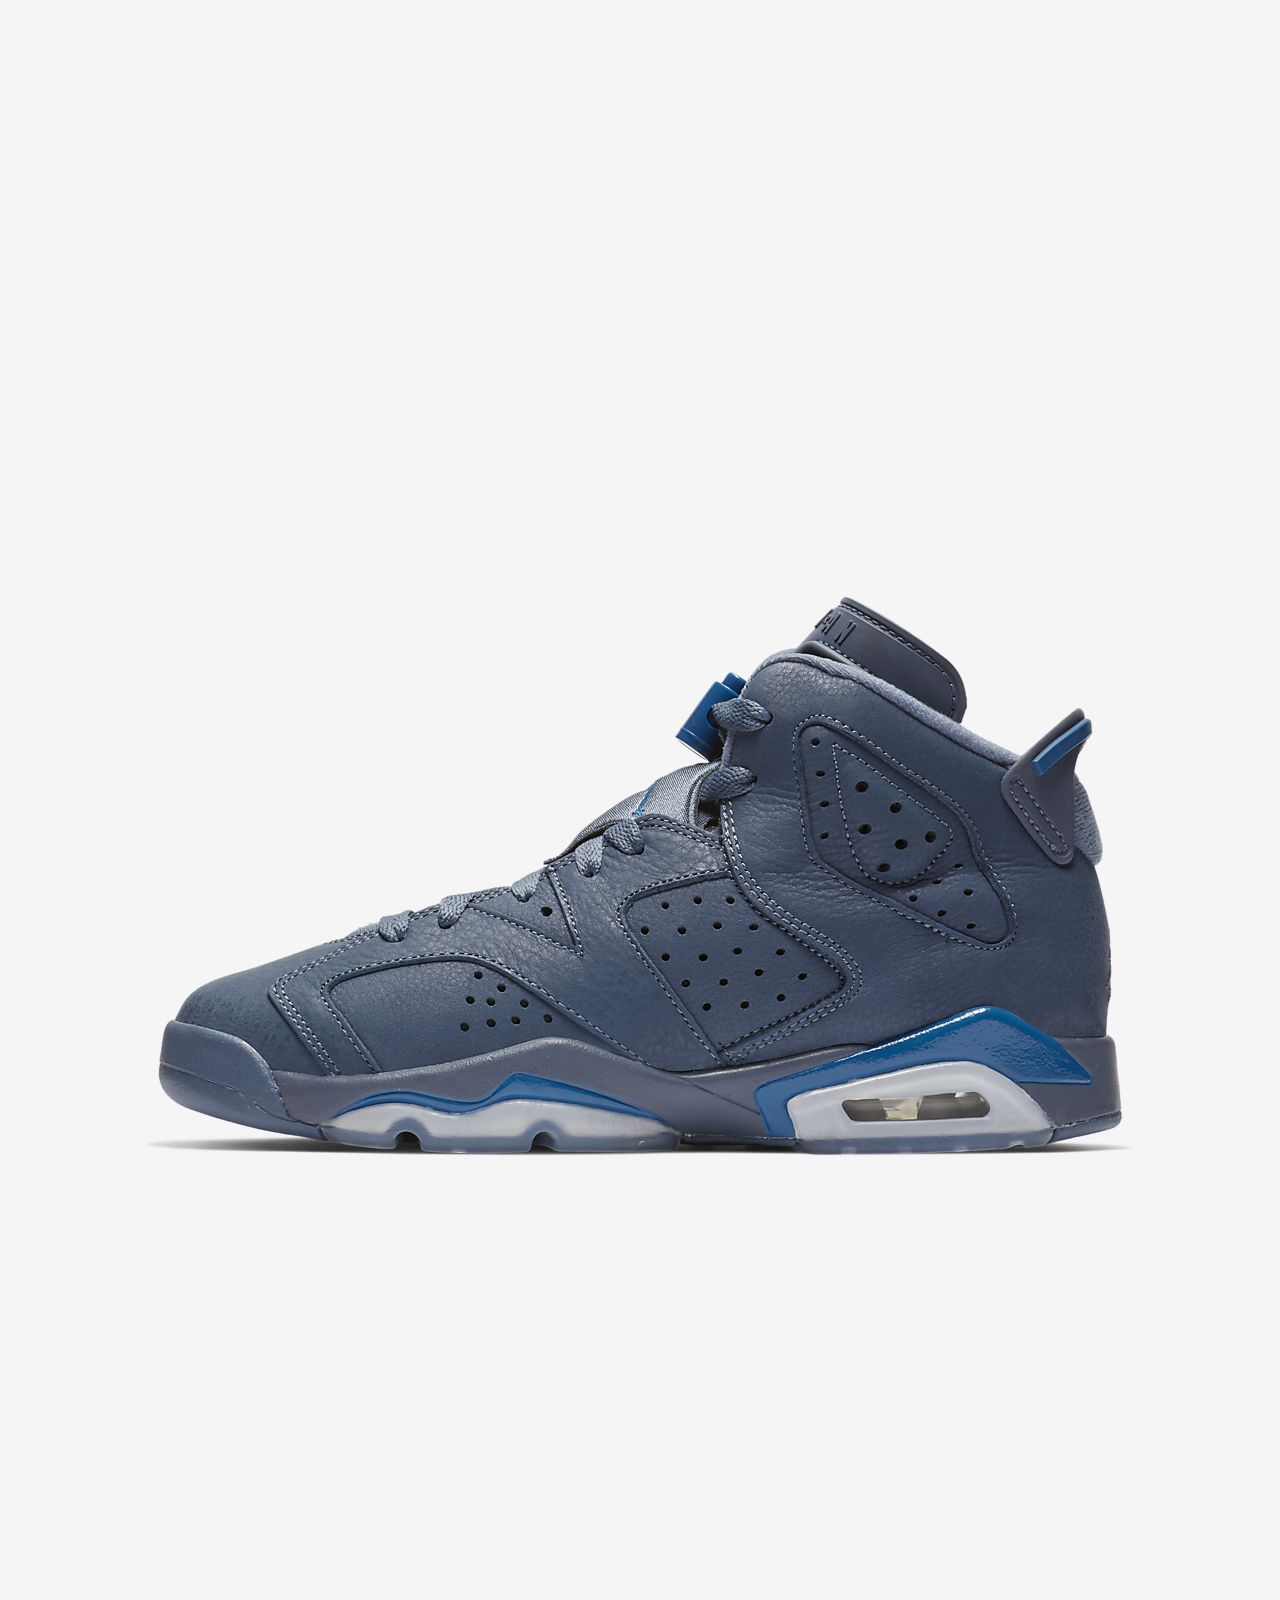 bc4e8c40ba2 Air Jordan 6 Retro Big Kids  Shoe. Nike.com